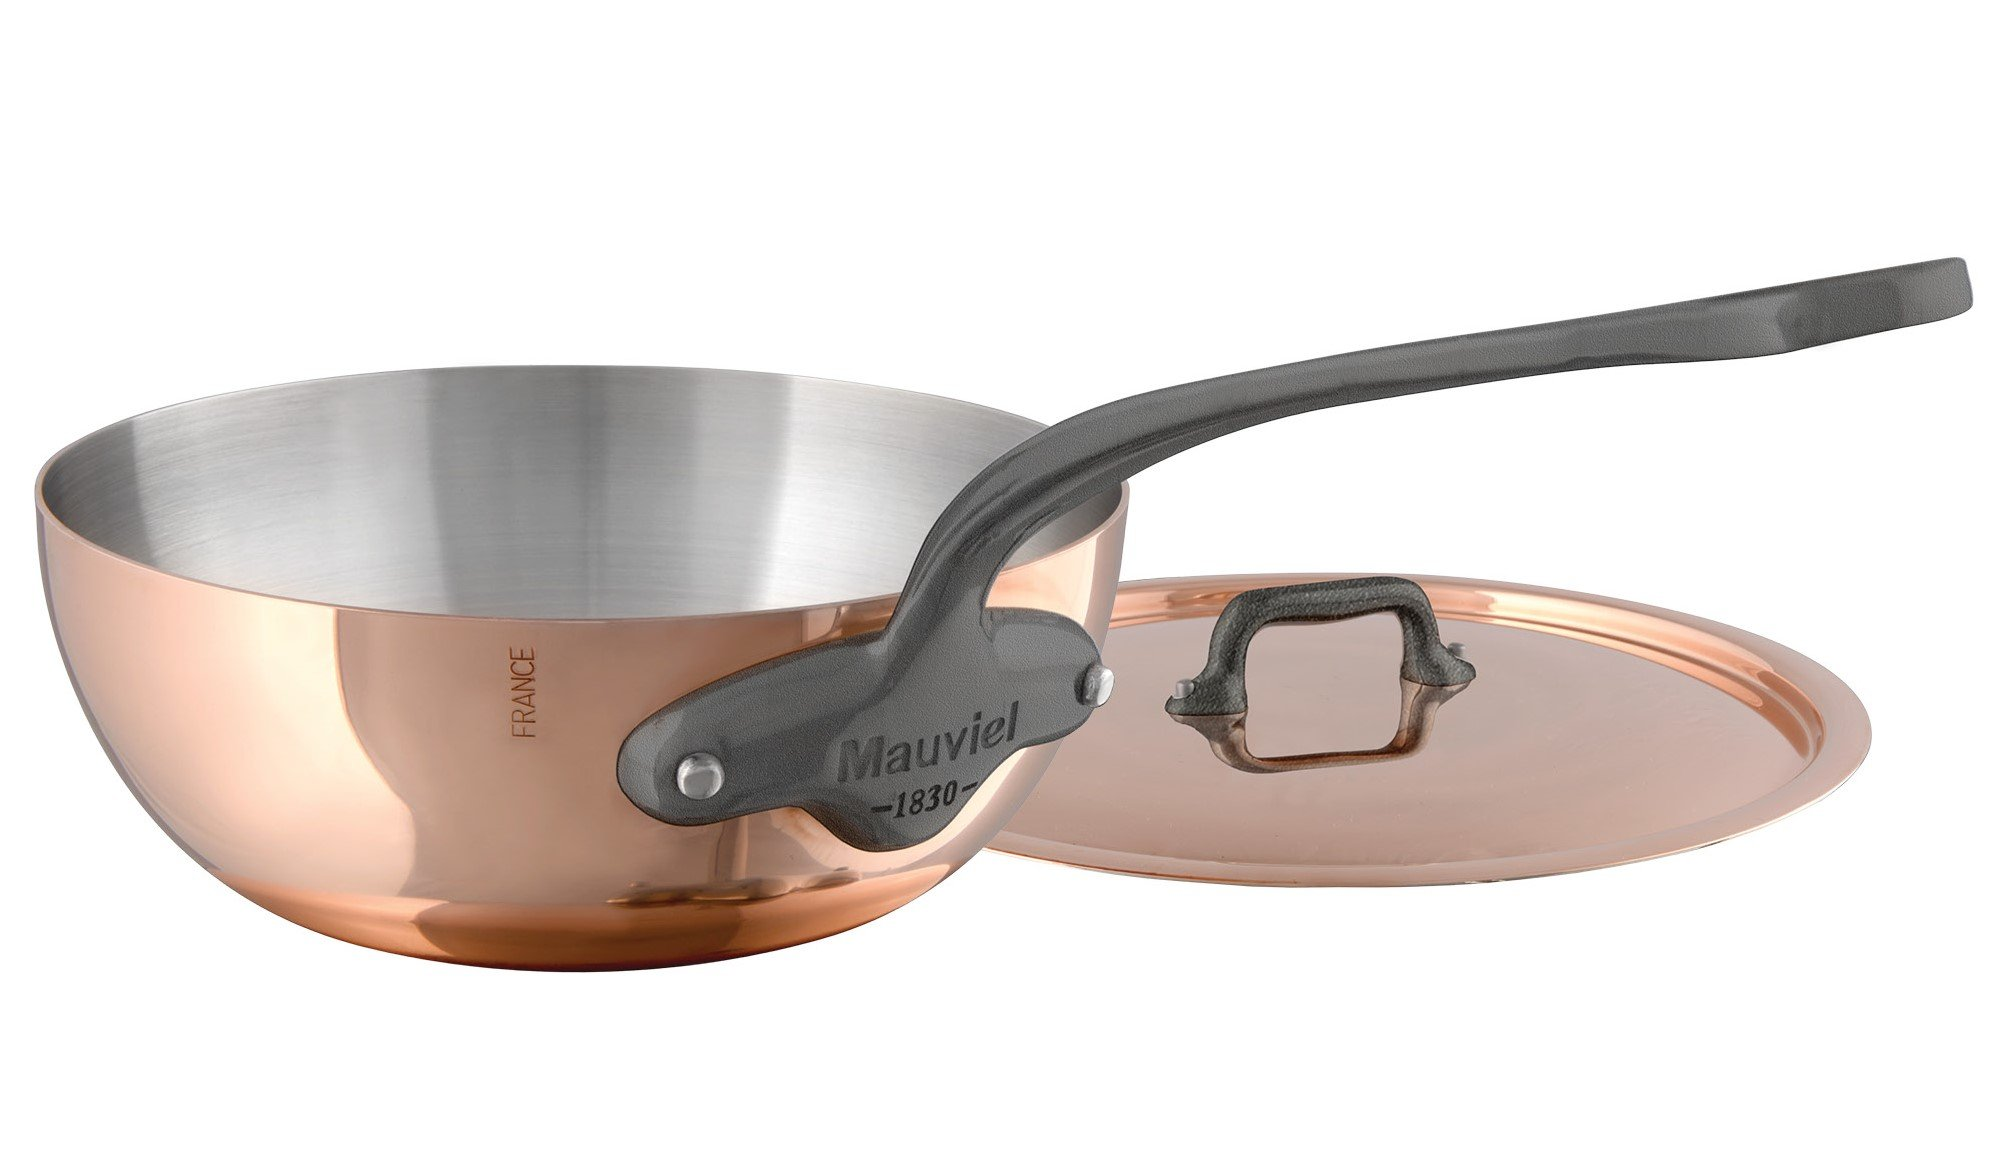 Mauviel M'Heritage M150C 6452.21 Curved Splayed Copper Saute Pan with Lid. 1.8L/1.9 quart 20cm/8'' with Cast Stainless Steel Iron Eletroplated  Handle by Mauviel